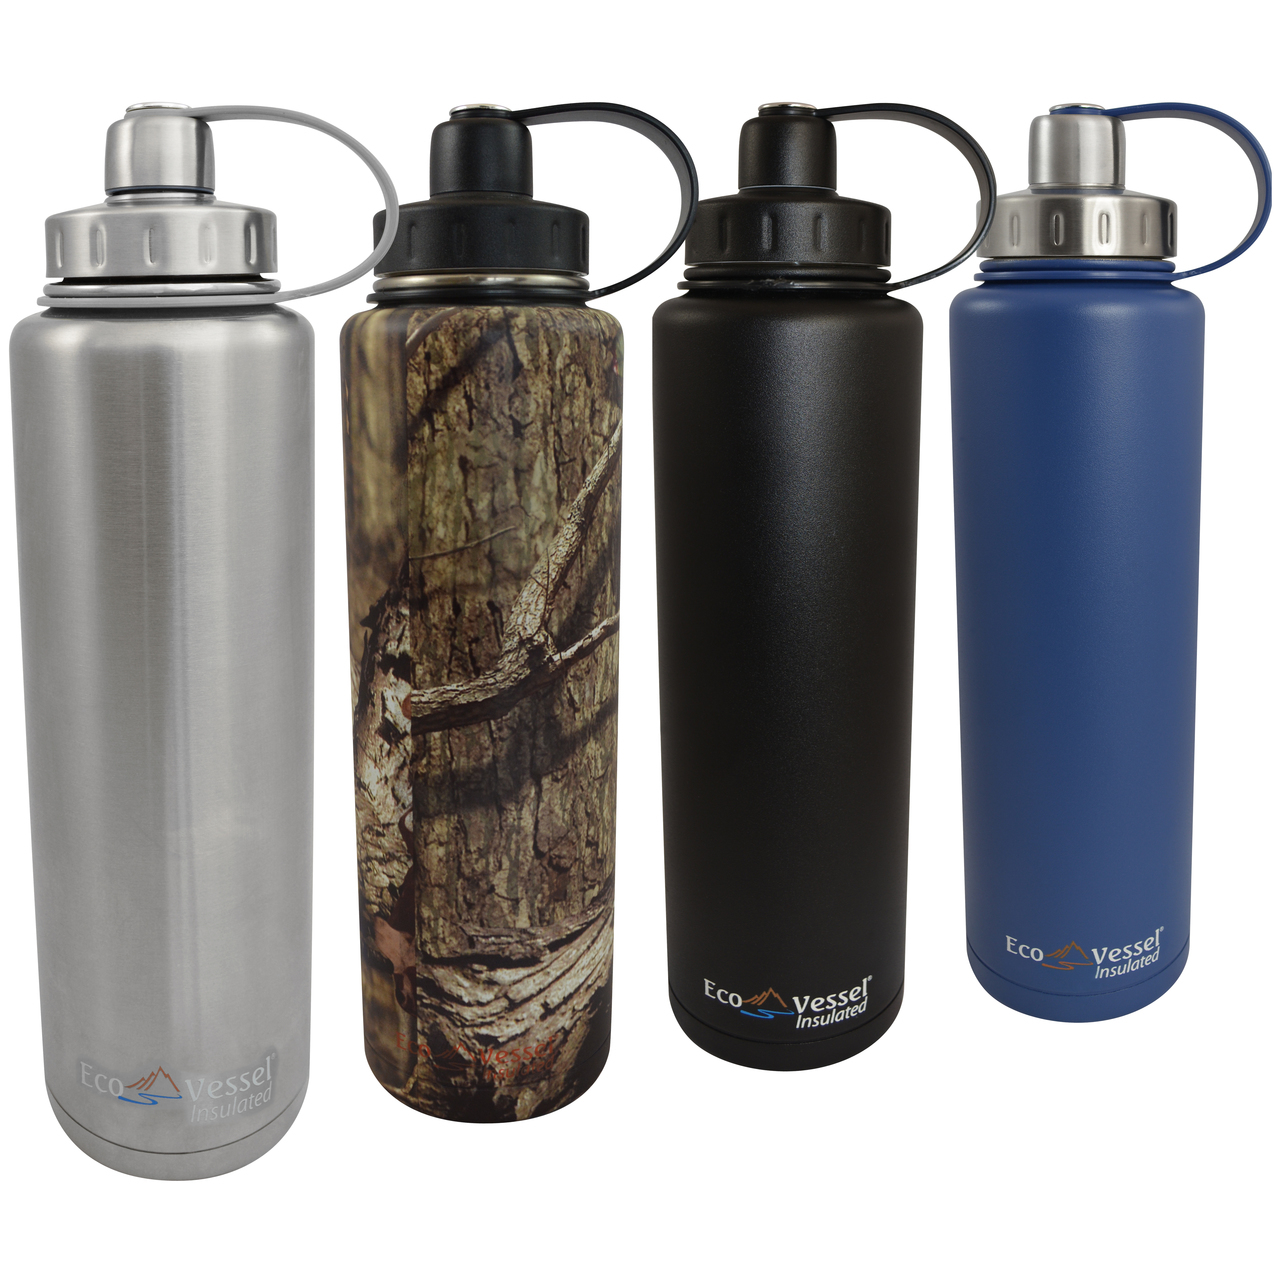 BIGFOOT Triple Insulated Water Bottle Review